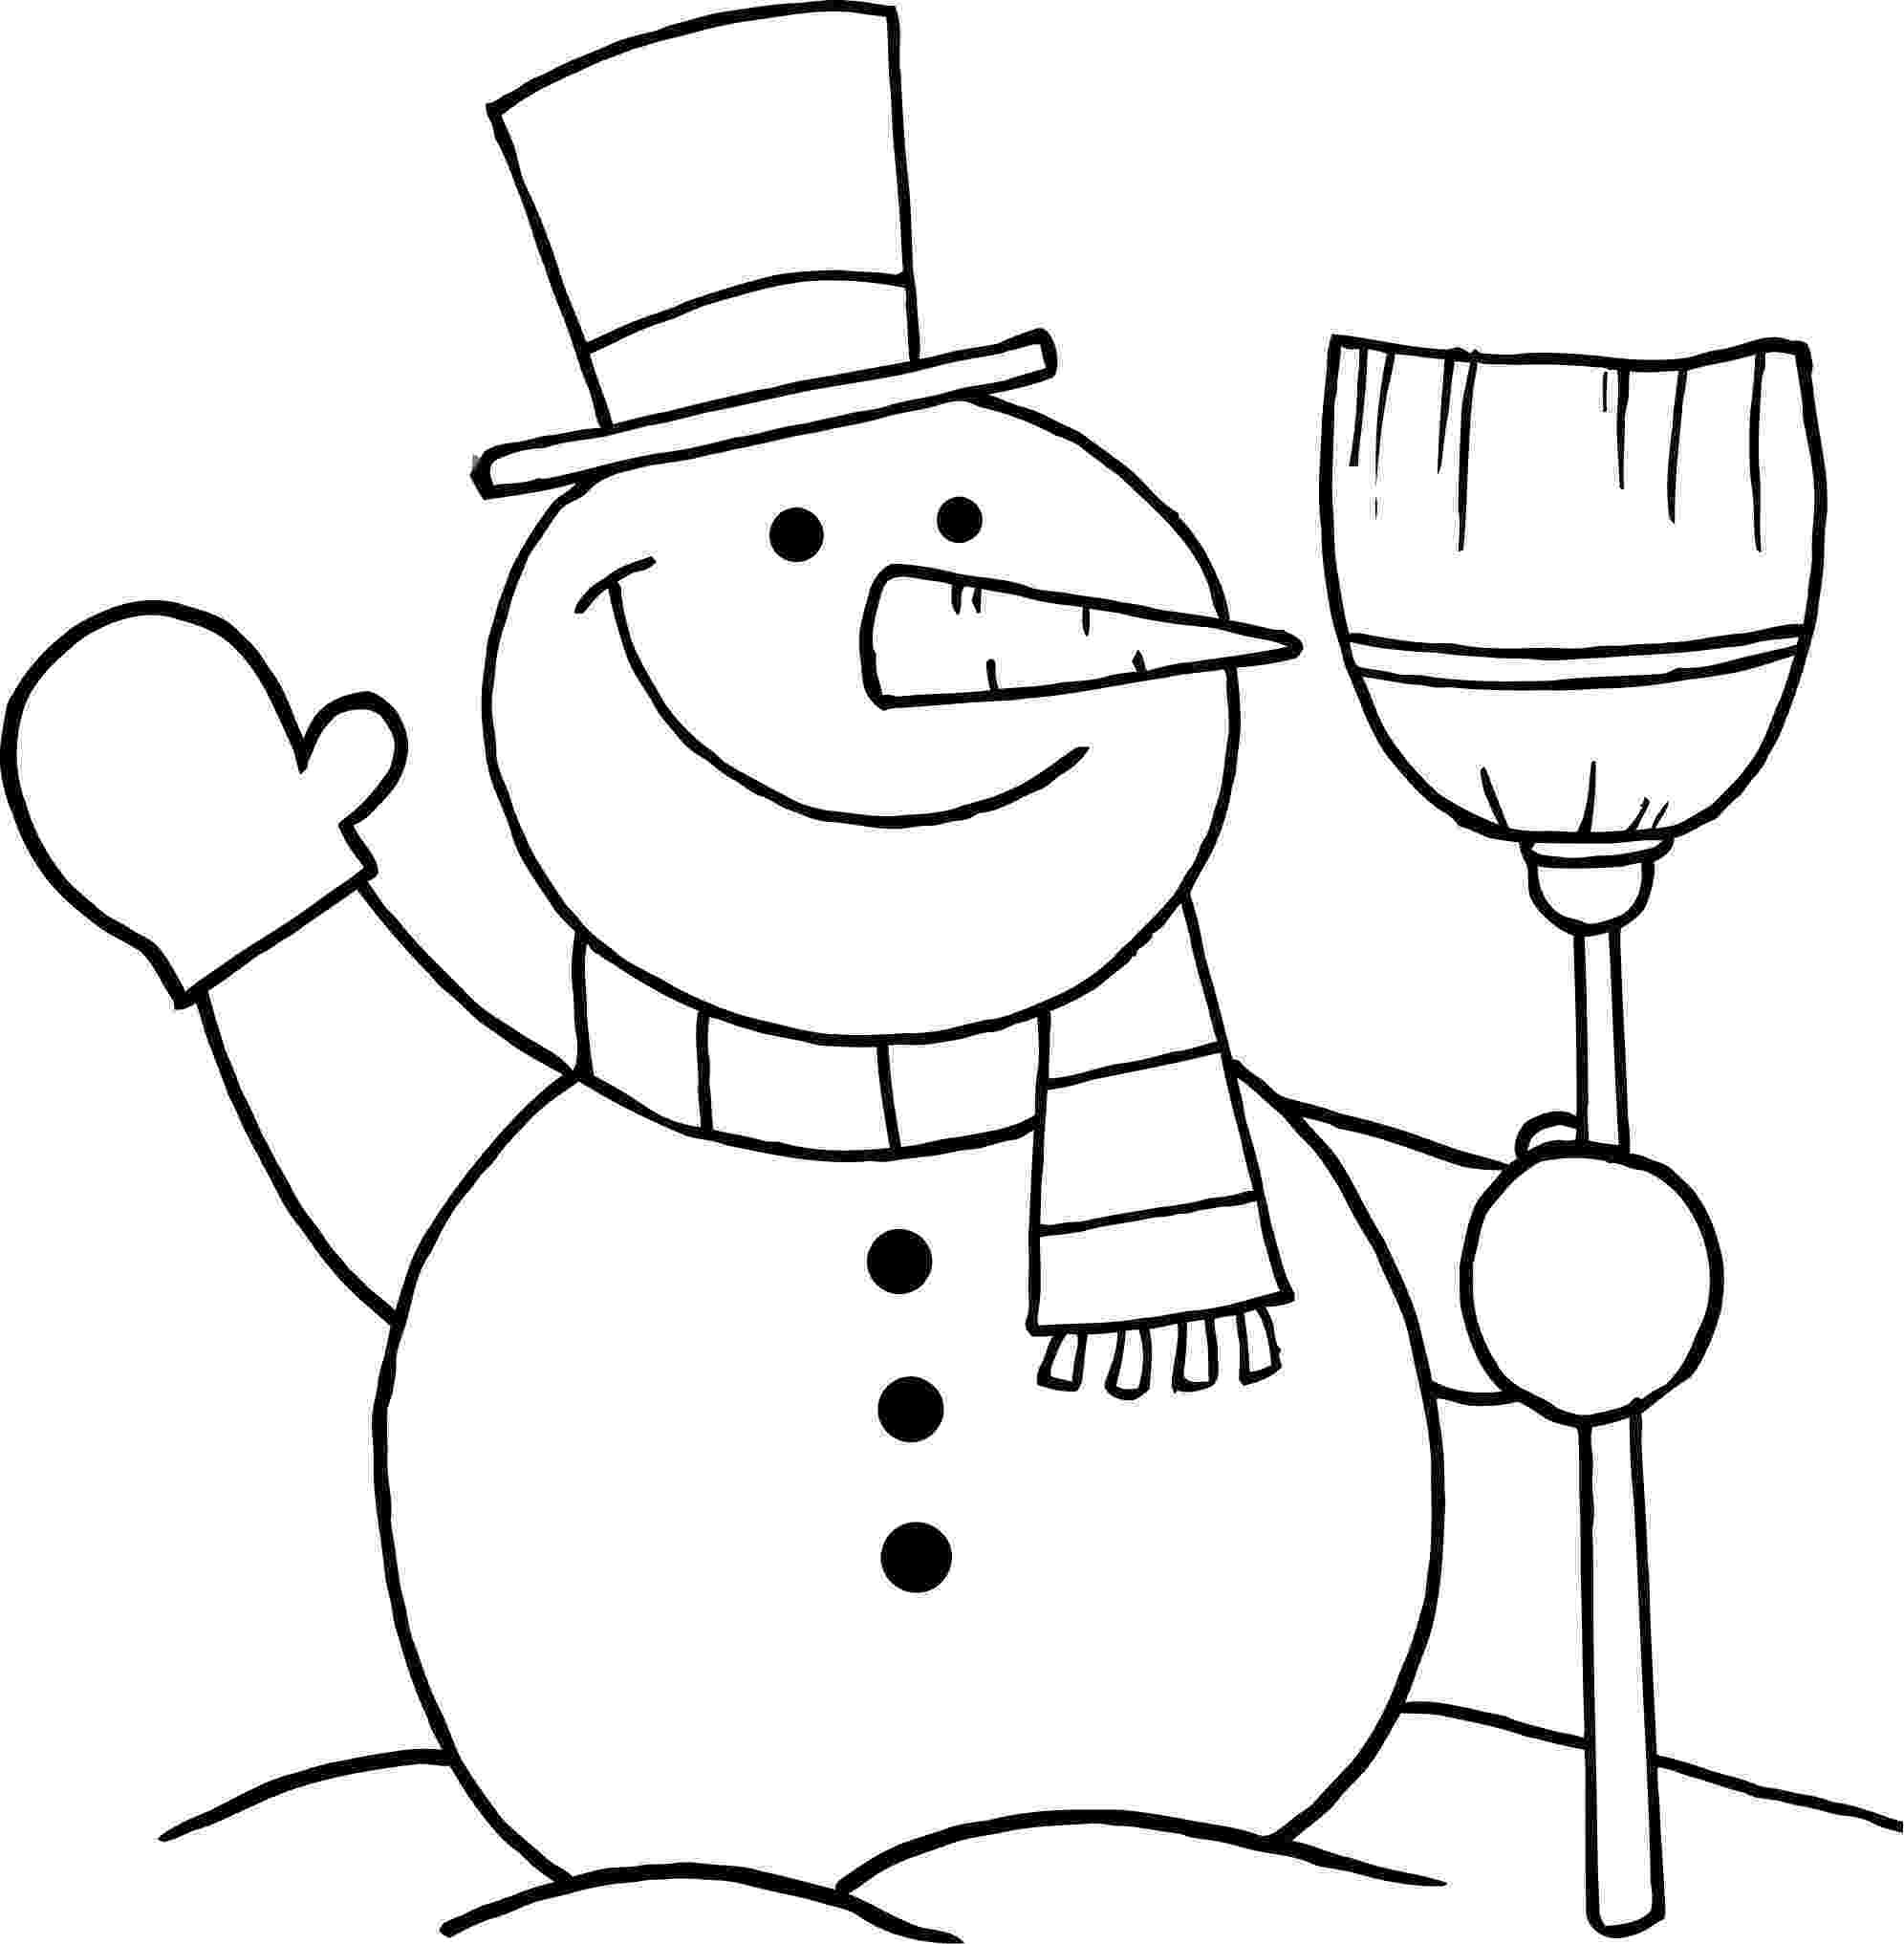 snowmancoloring sheets snow man line drawing at getdrawingscom free for sheets snowmancoloring